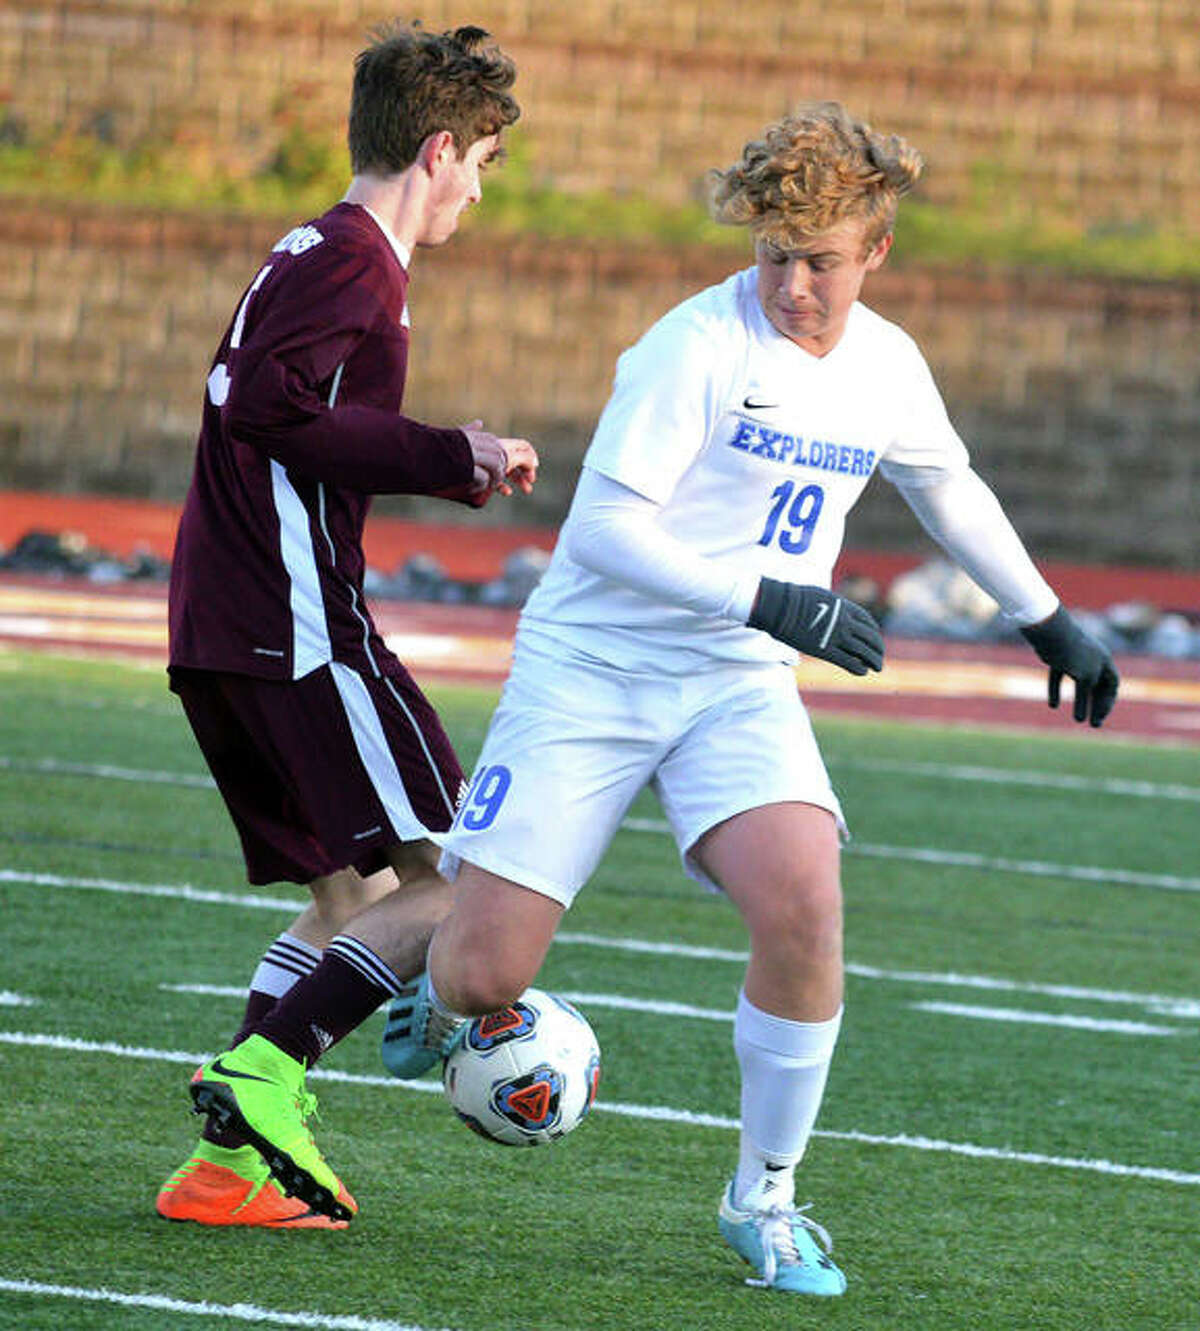 Marquette Catholic's Matt Lehr (right) battles a Chicago U-High player for the ball during the 2019 Class 1A boys soccer state championship match last fall. Under the IHSA's adjusted schedule because of the virus panemic, boys soccer will be played in next spring instead of fall.